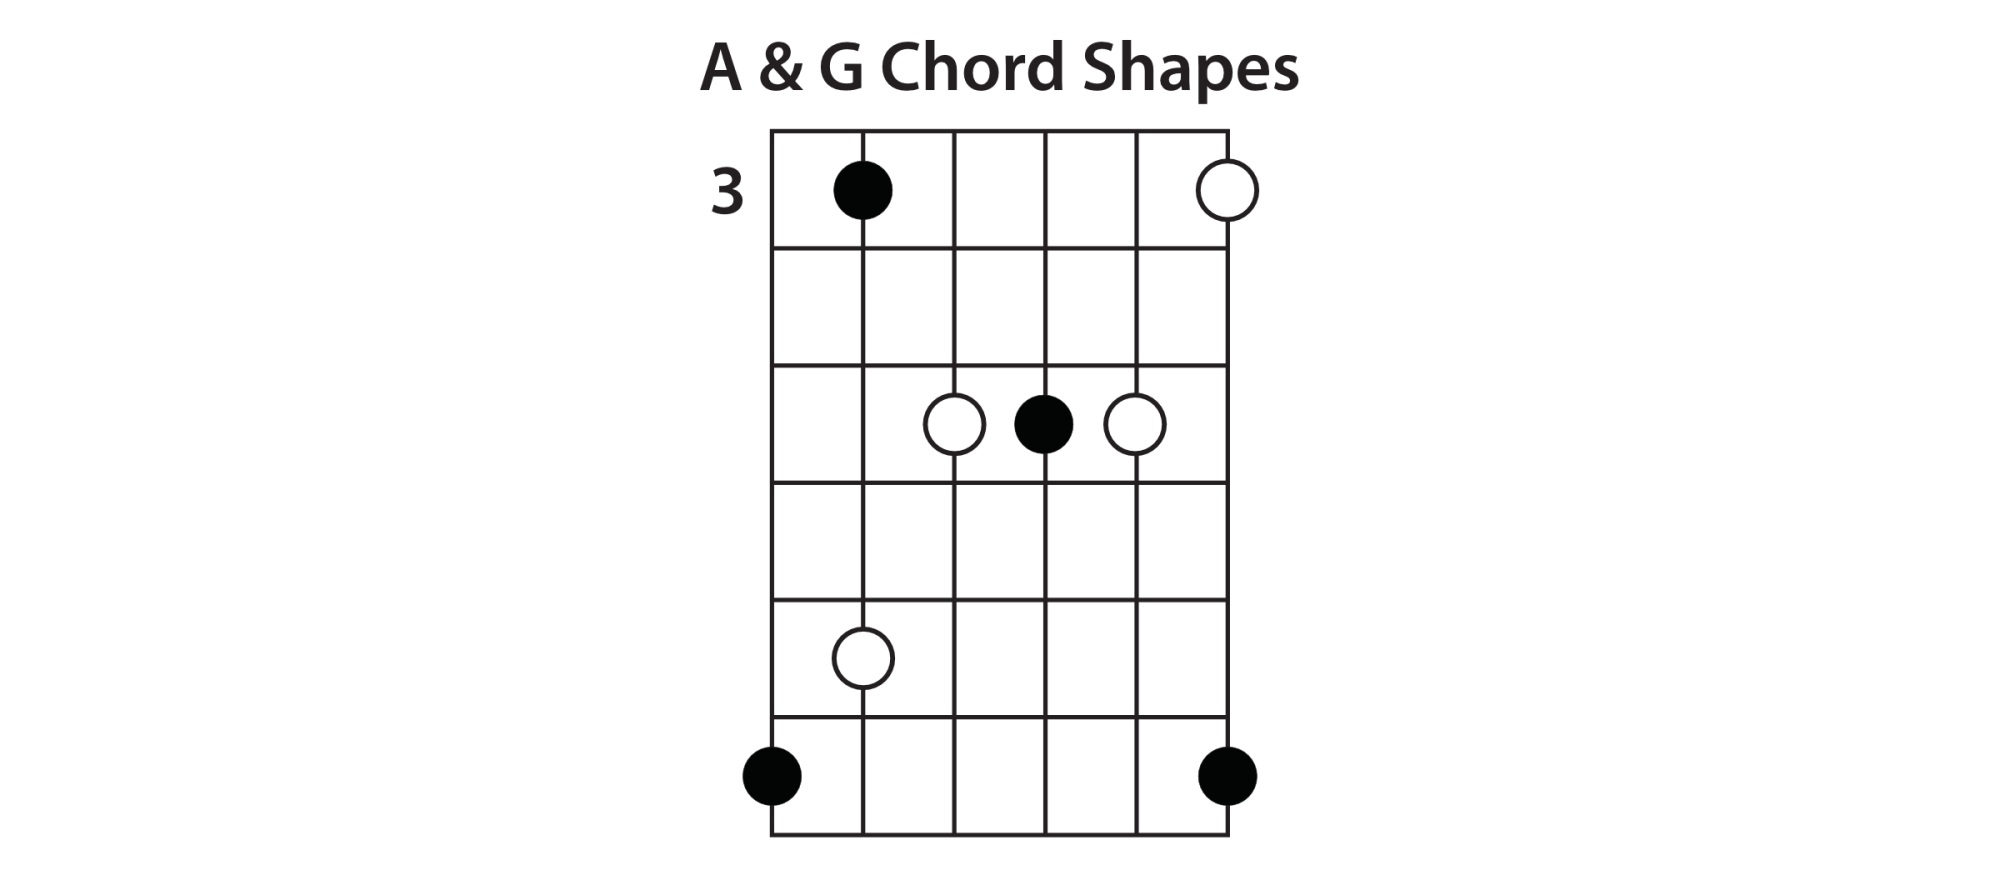 hight resolution of e shape the next chord shape in the sequence is the e shape this one is pretty standard since it s just a regular e major bar chord shape